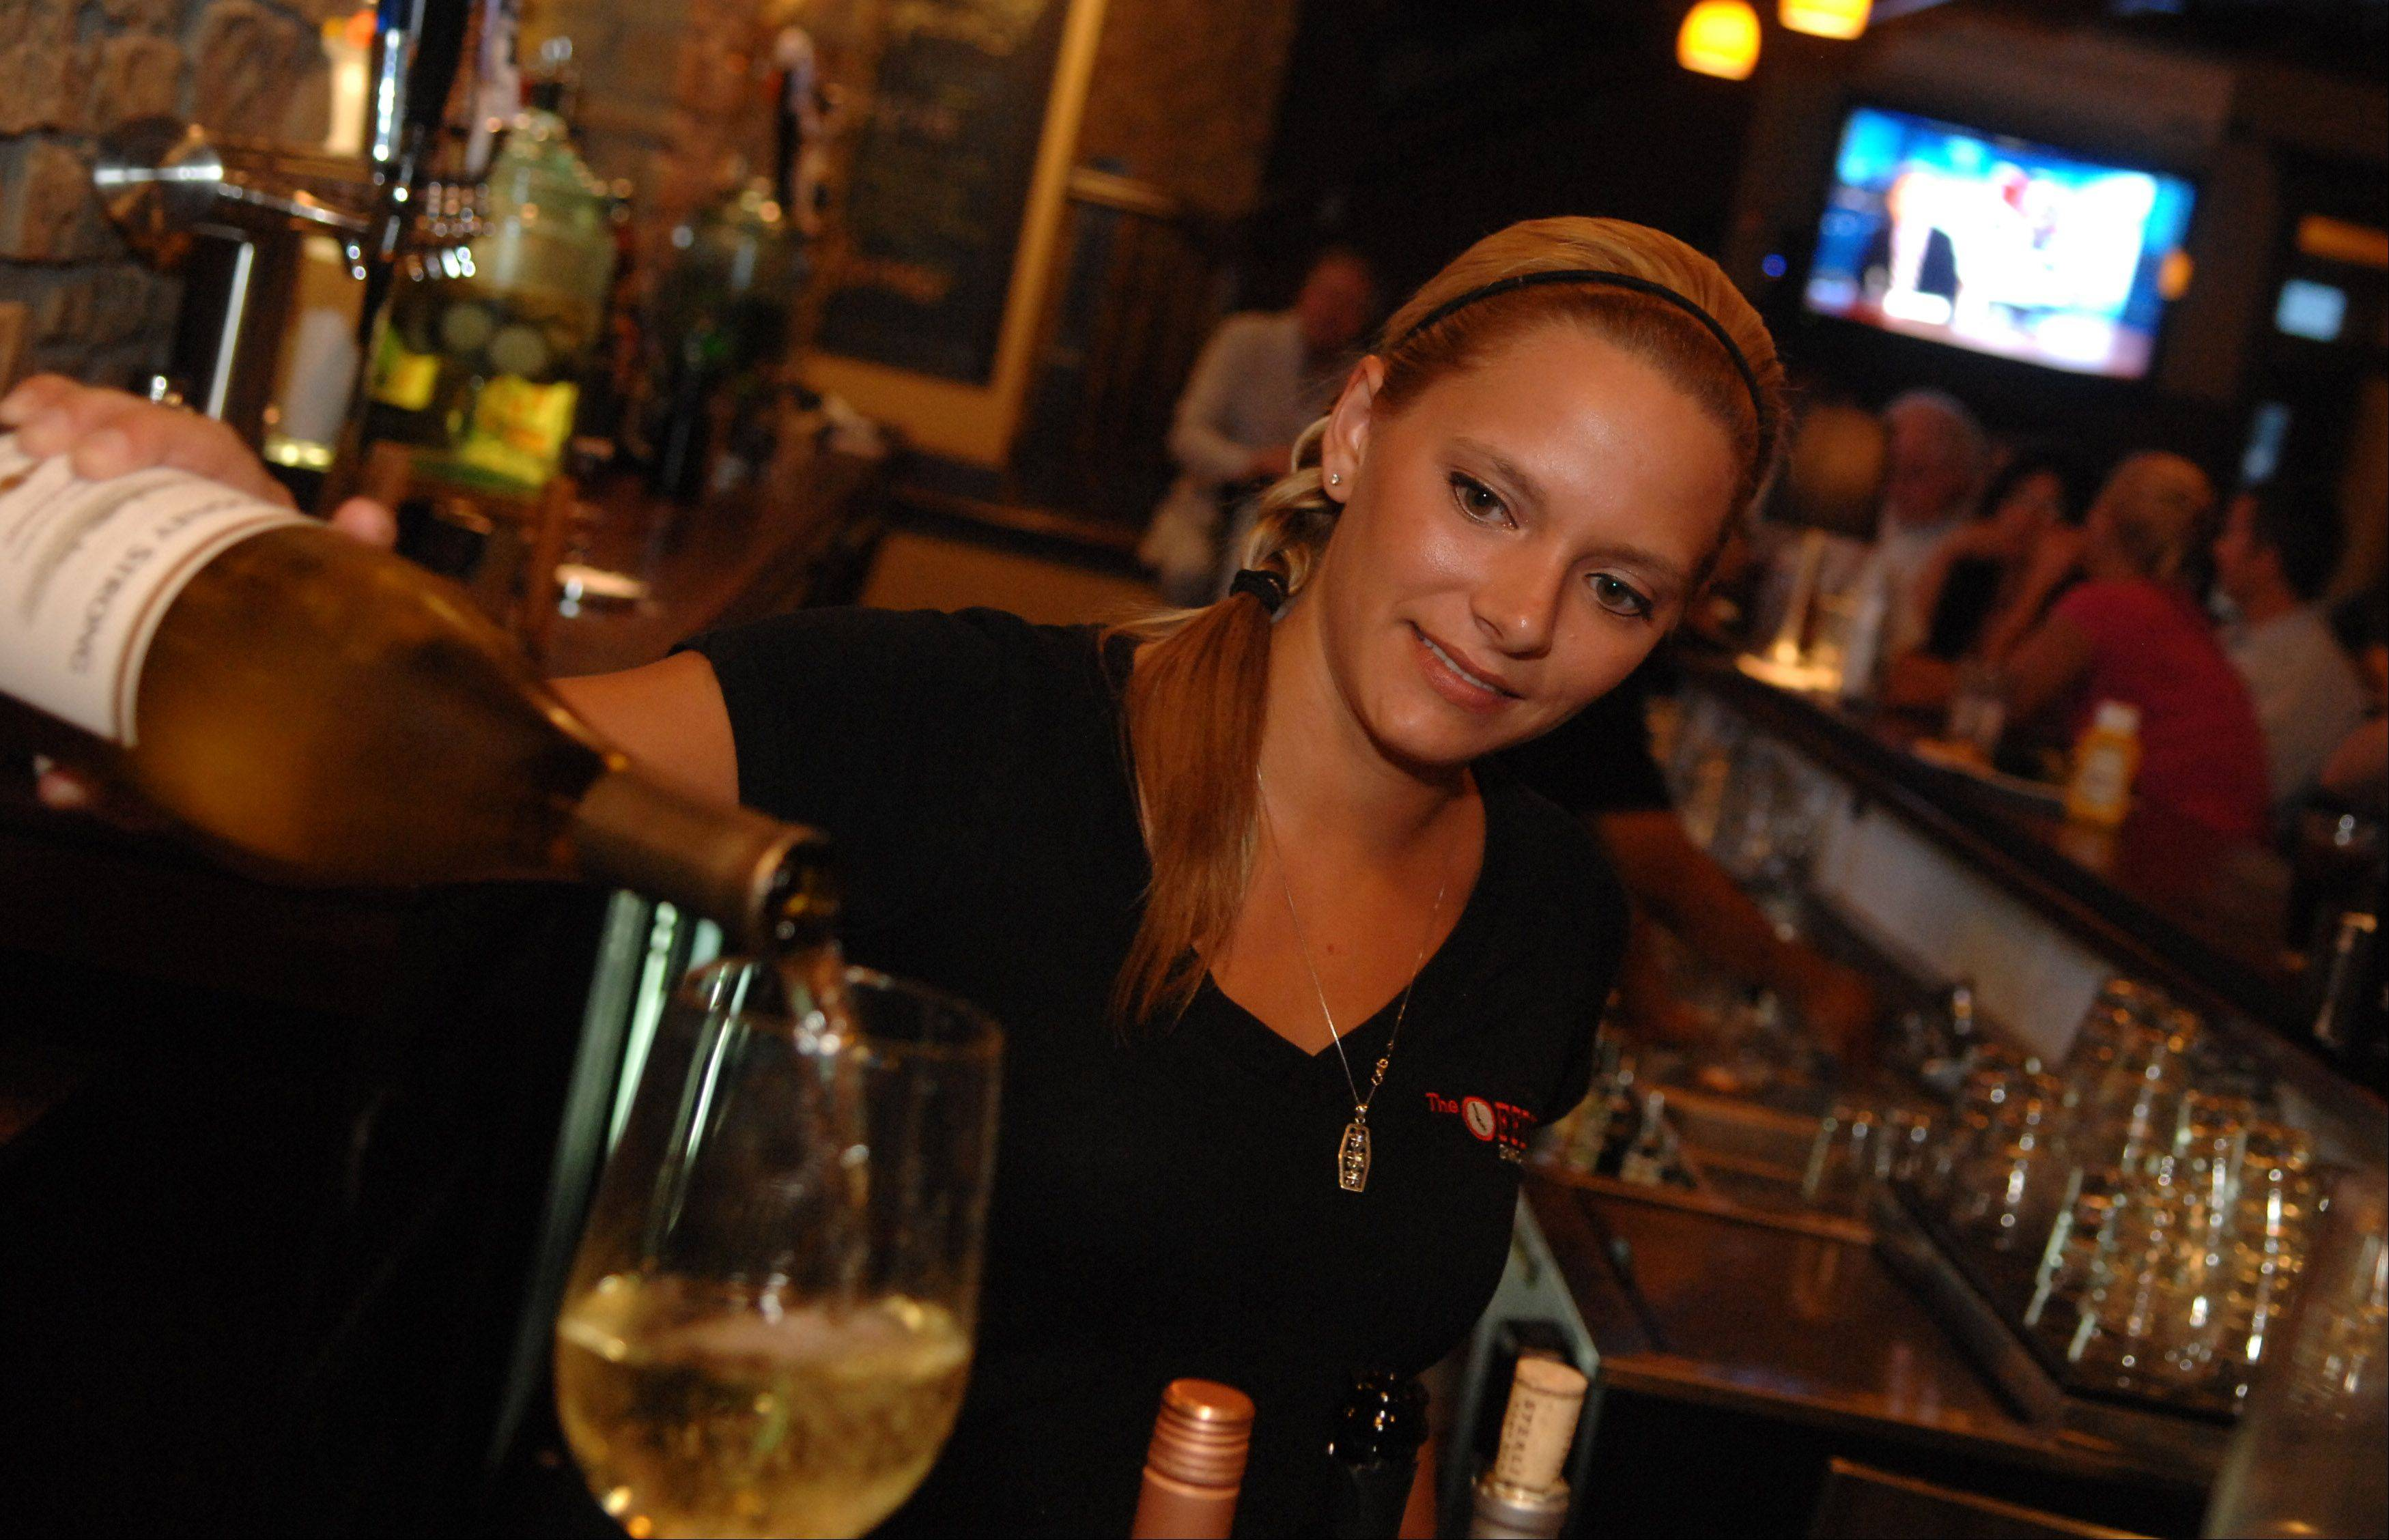 Bartender Stephanie Miller pours a glass of wine at The Office.